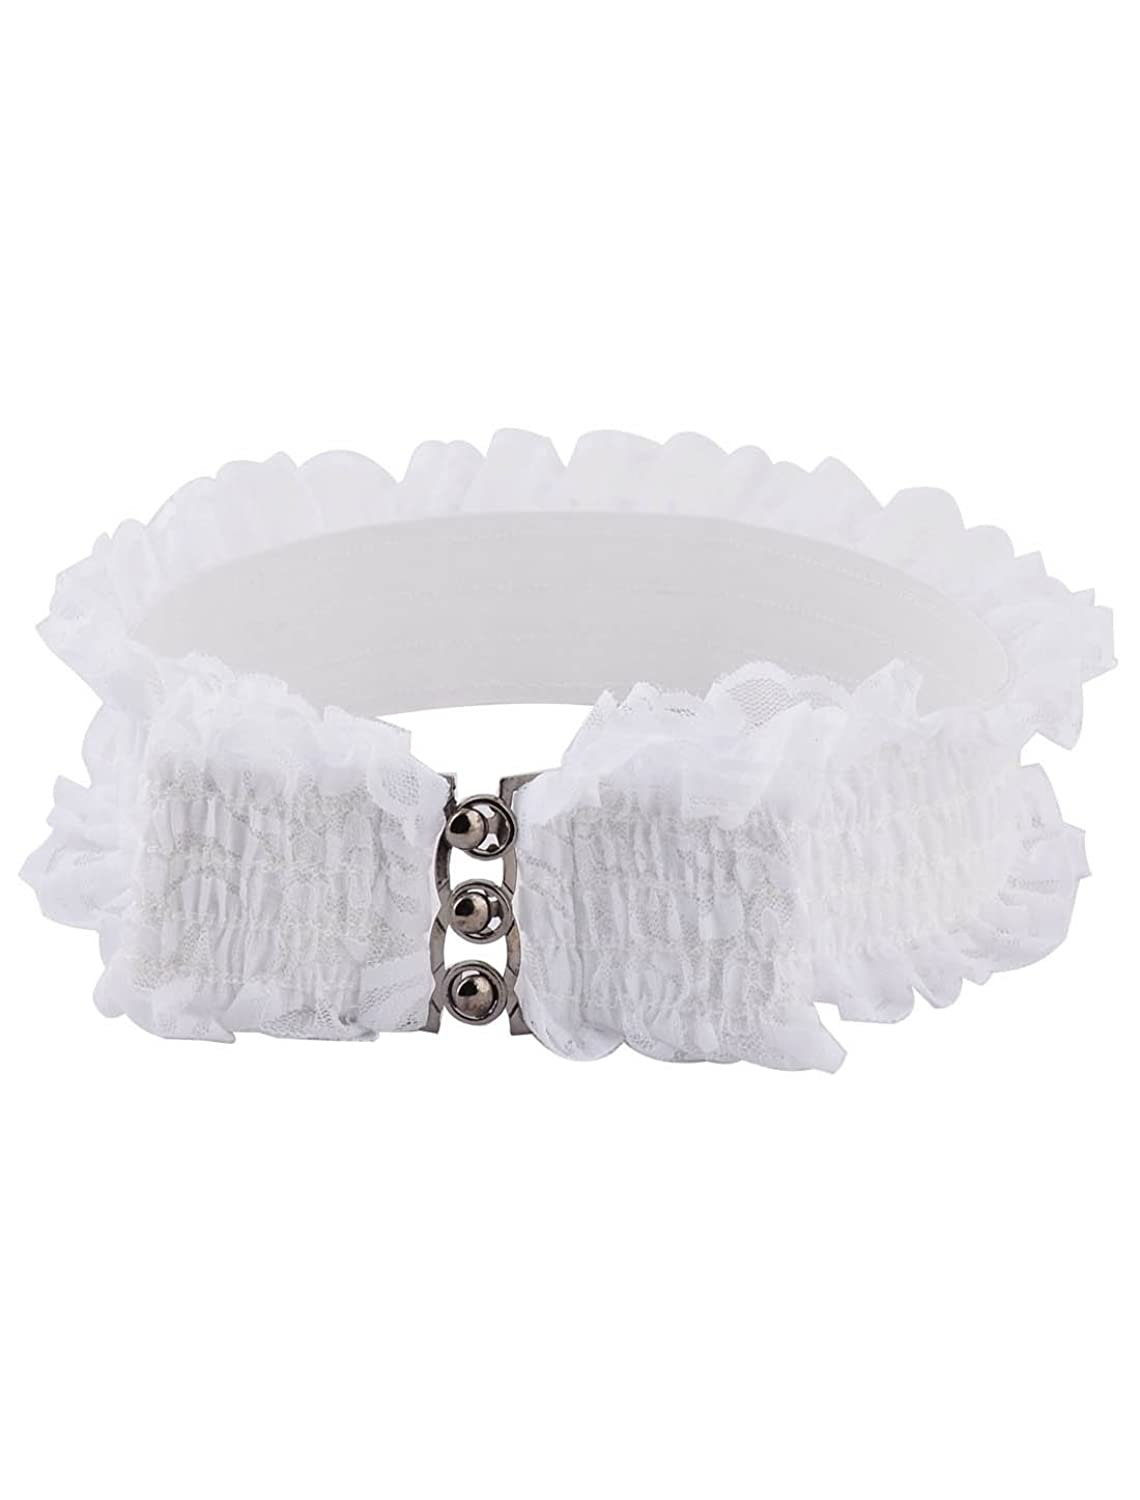 uxcell Lace Women Lady Outdoor Party Elastic Stretchy Ornament Cinch Buckle Waist Belt